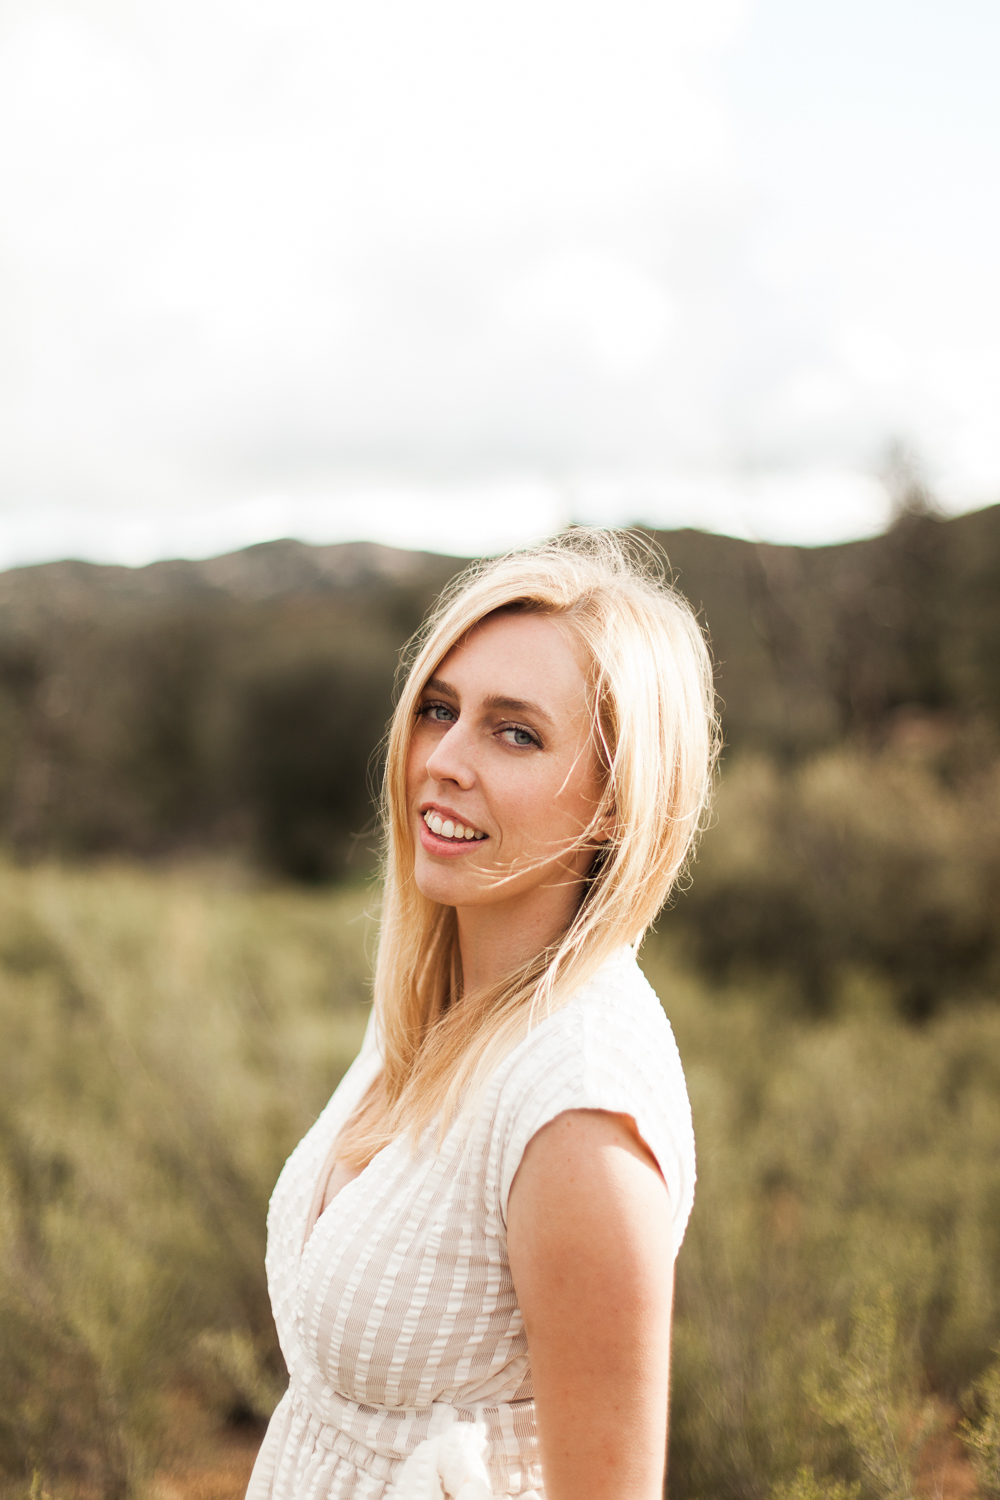 san diego headshot photographer - ryanne bee photography